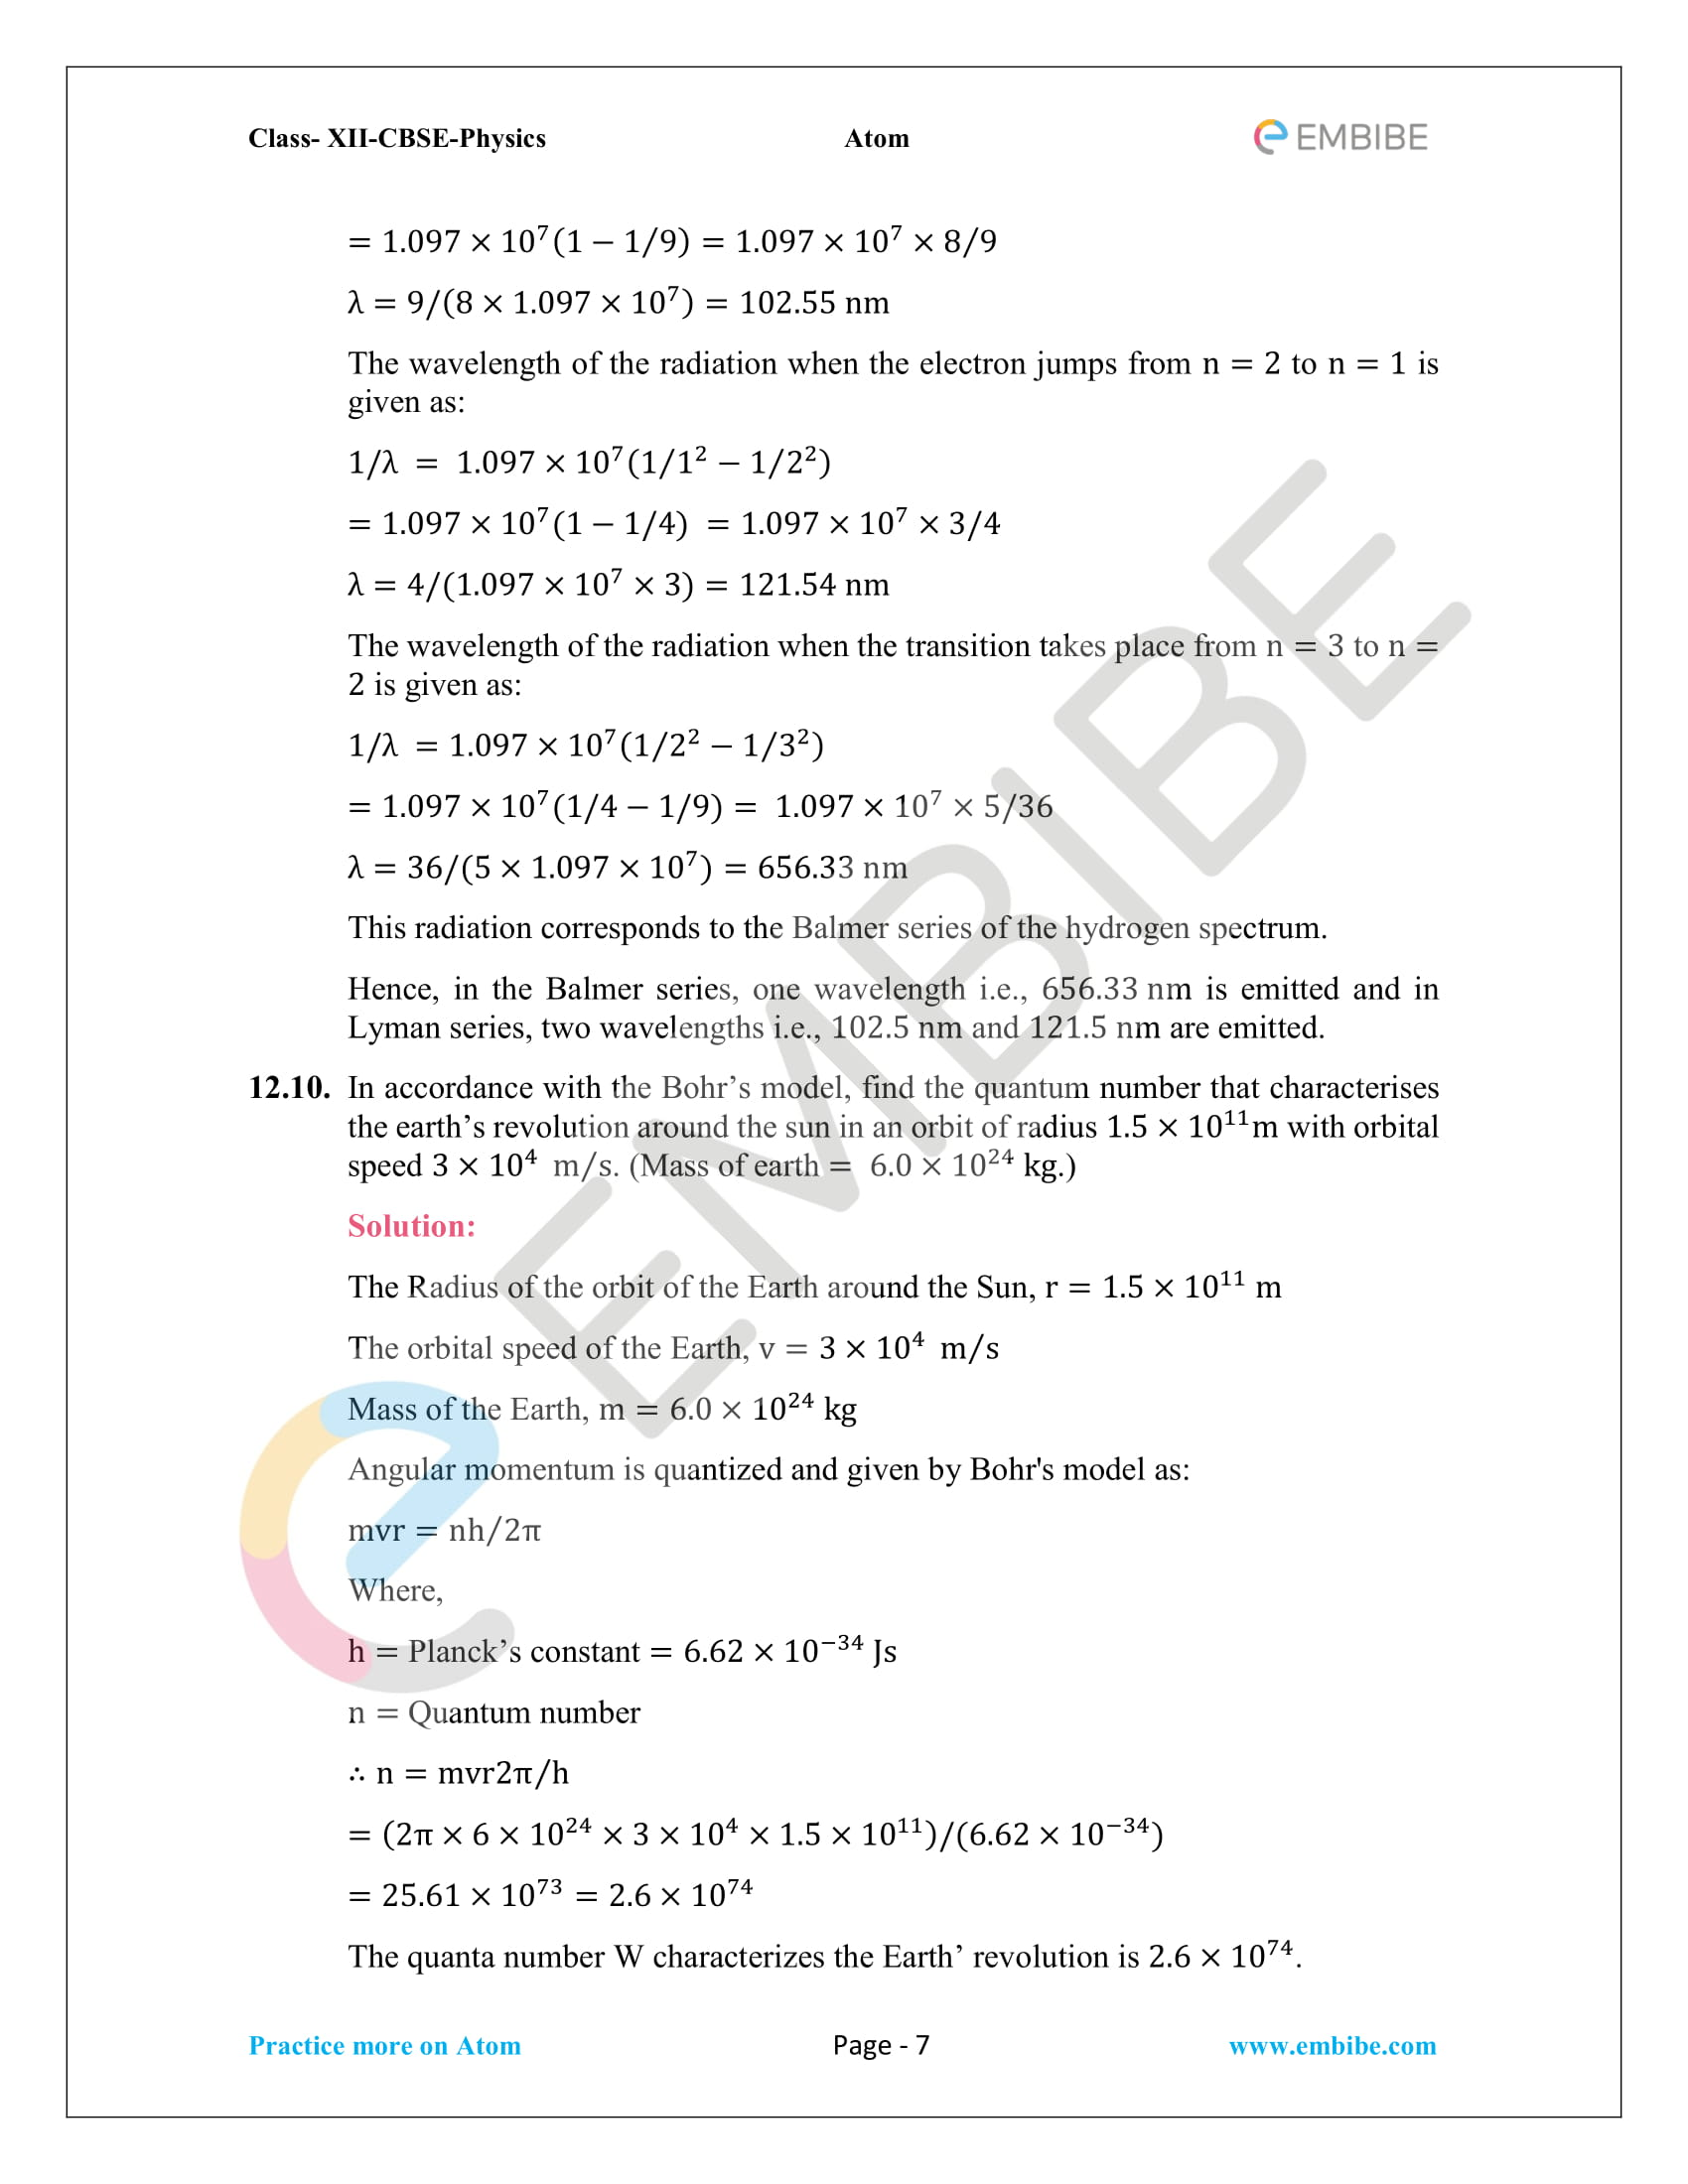 NCERT Solutions For Class 12 Physics Chapter 12 PDF